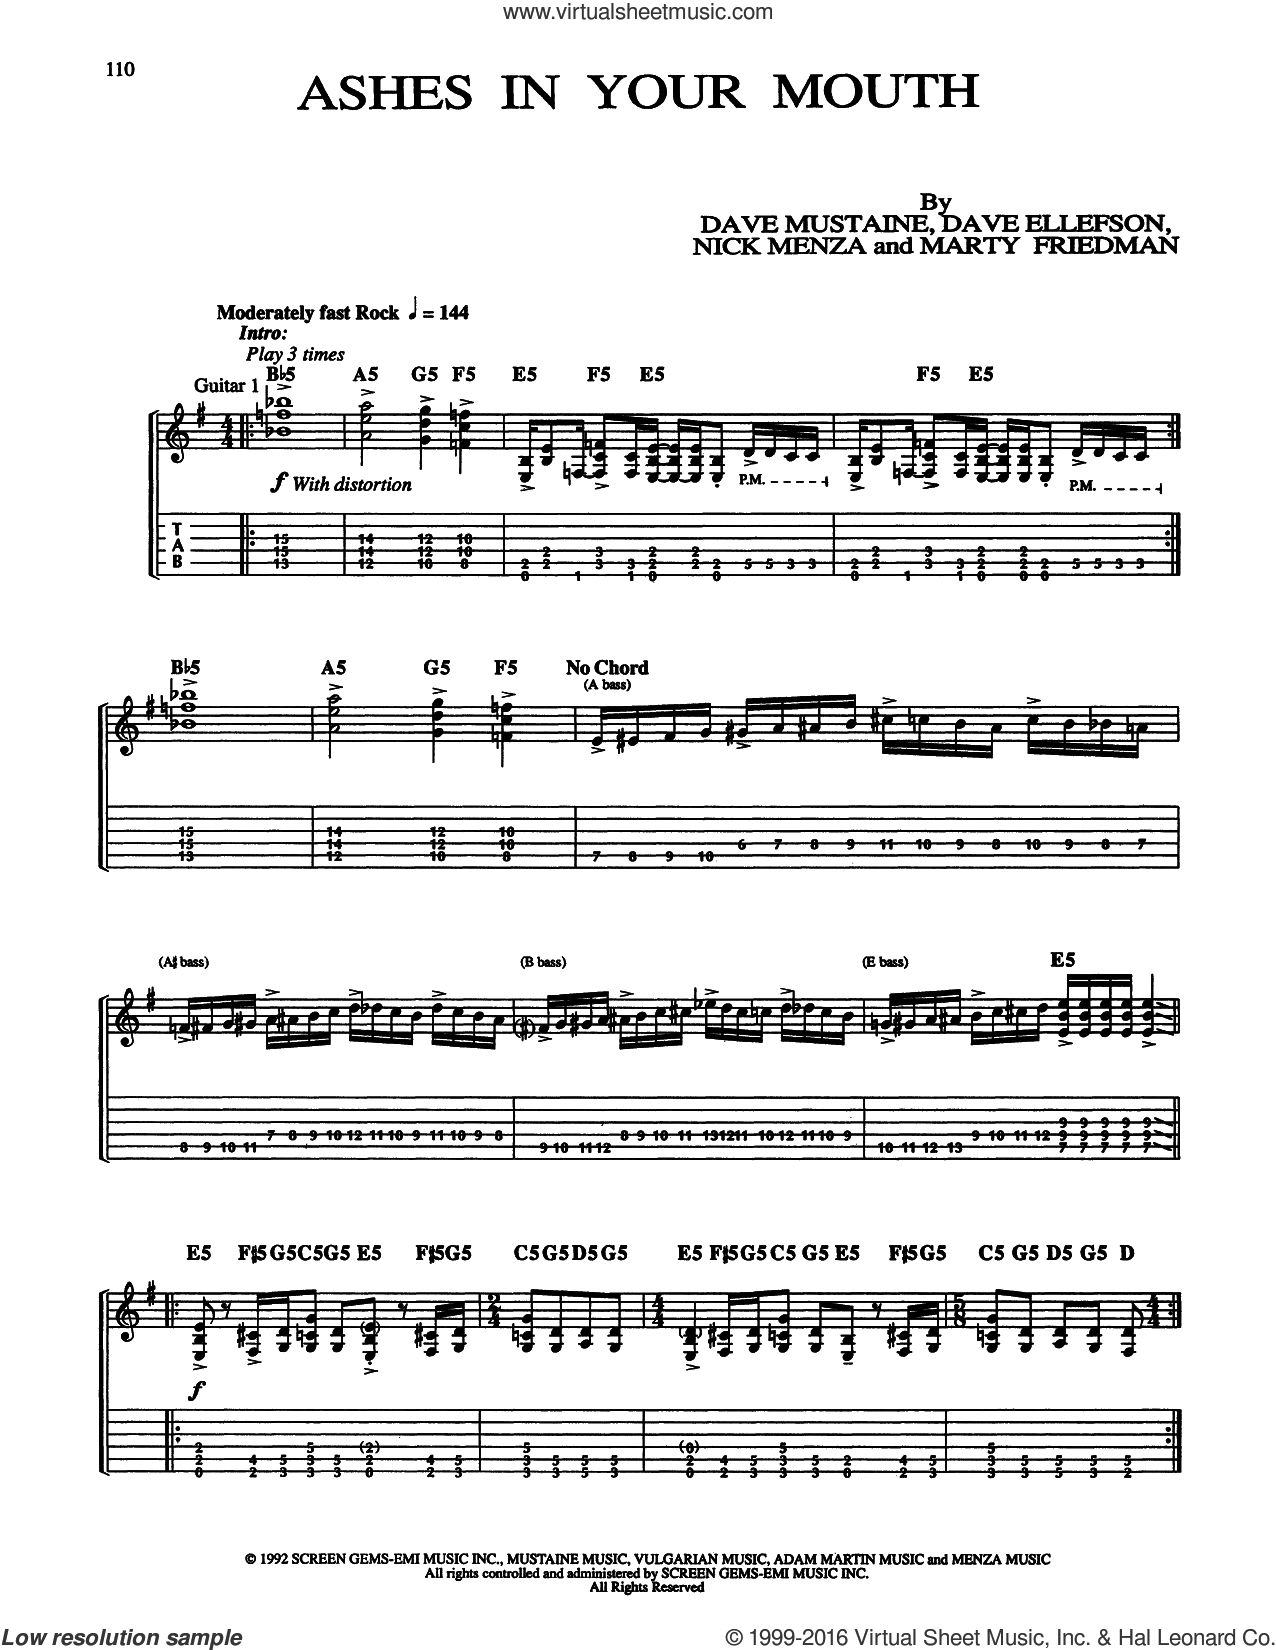 Ashes In Your Mouth sheet music for guitar (tablature) by Megadeth, Dave Ellefson, Dave Mustaine, Marty Friedman and Nick Menza, intermediate